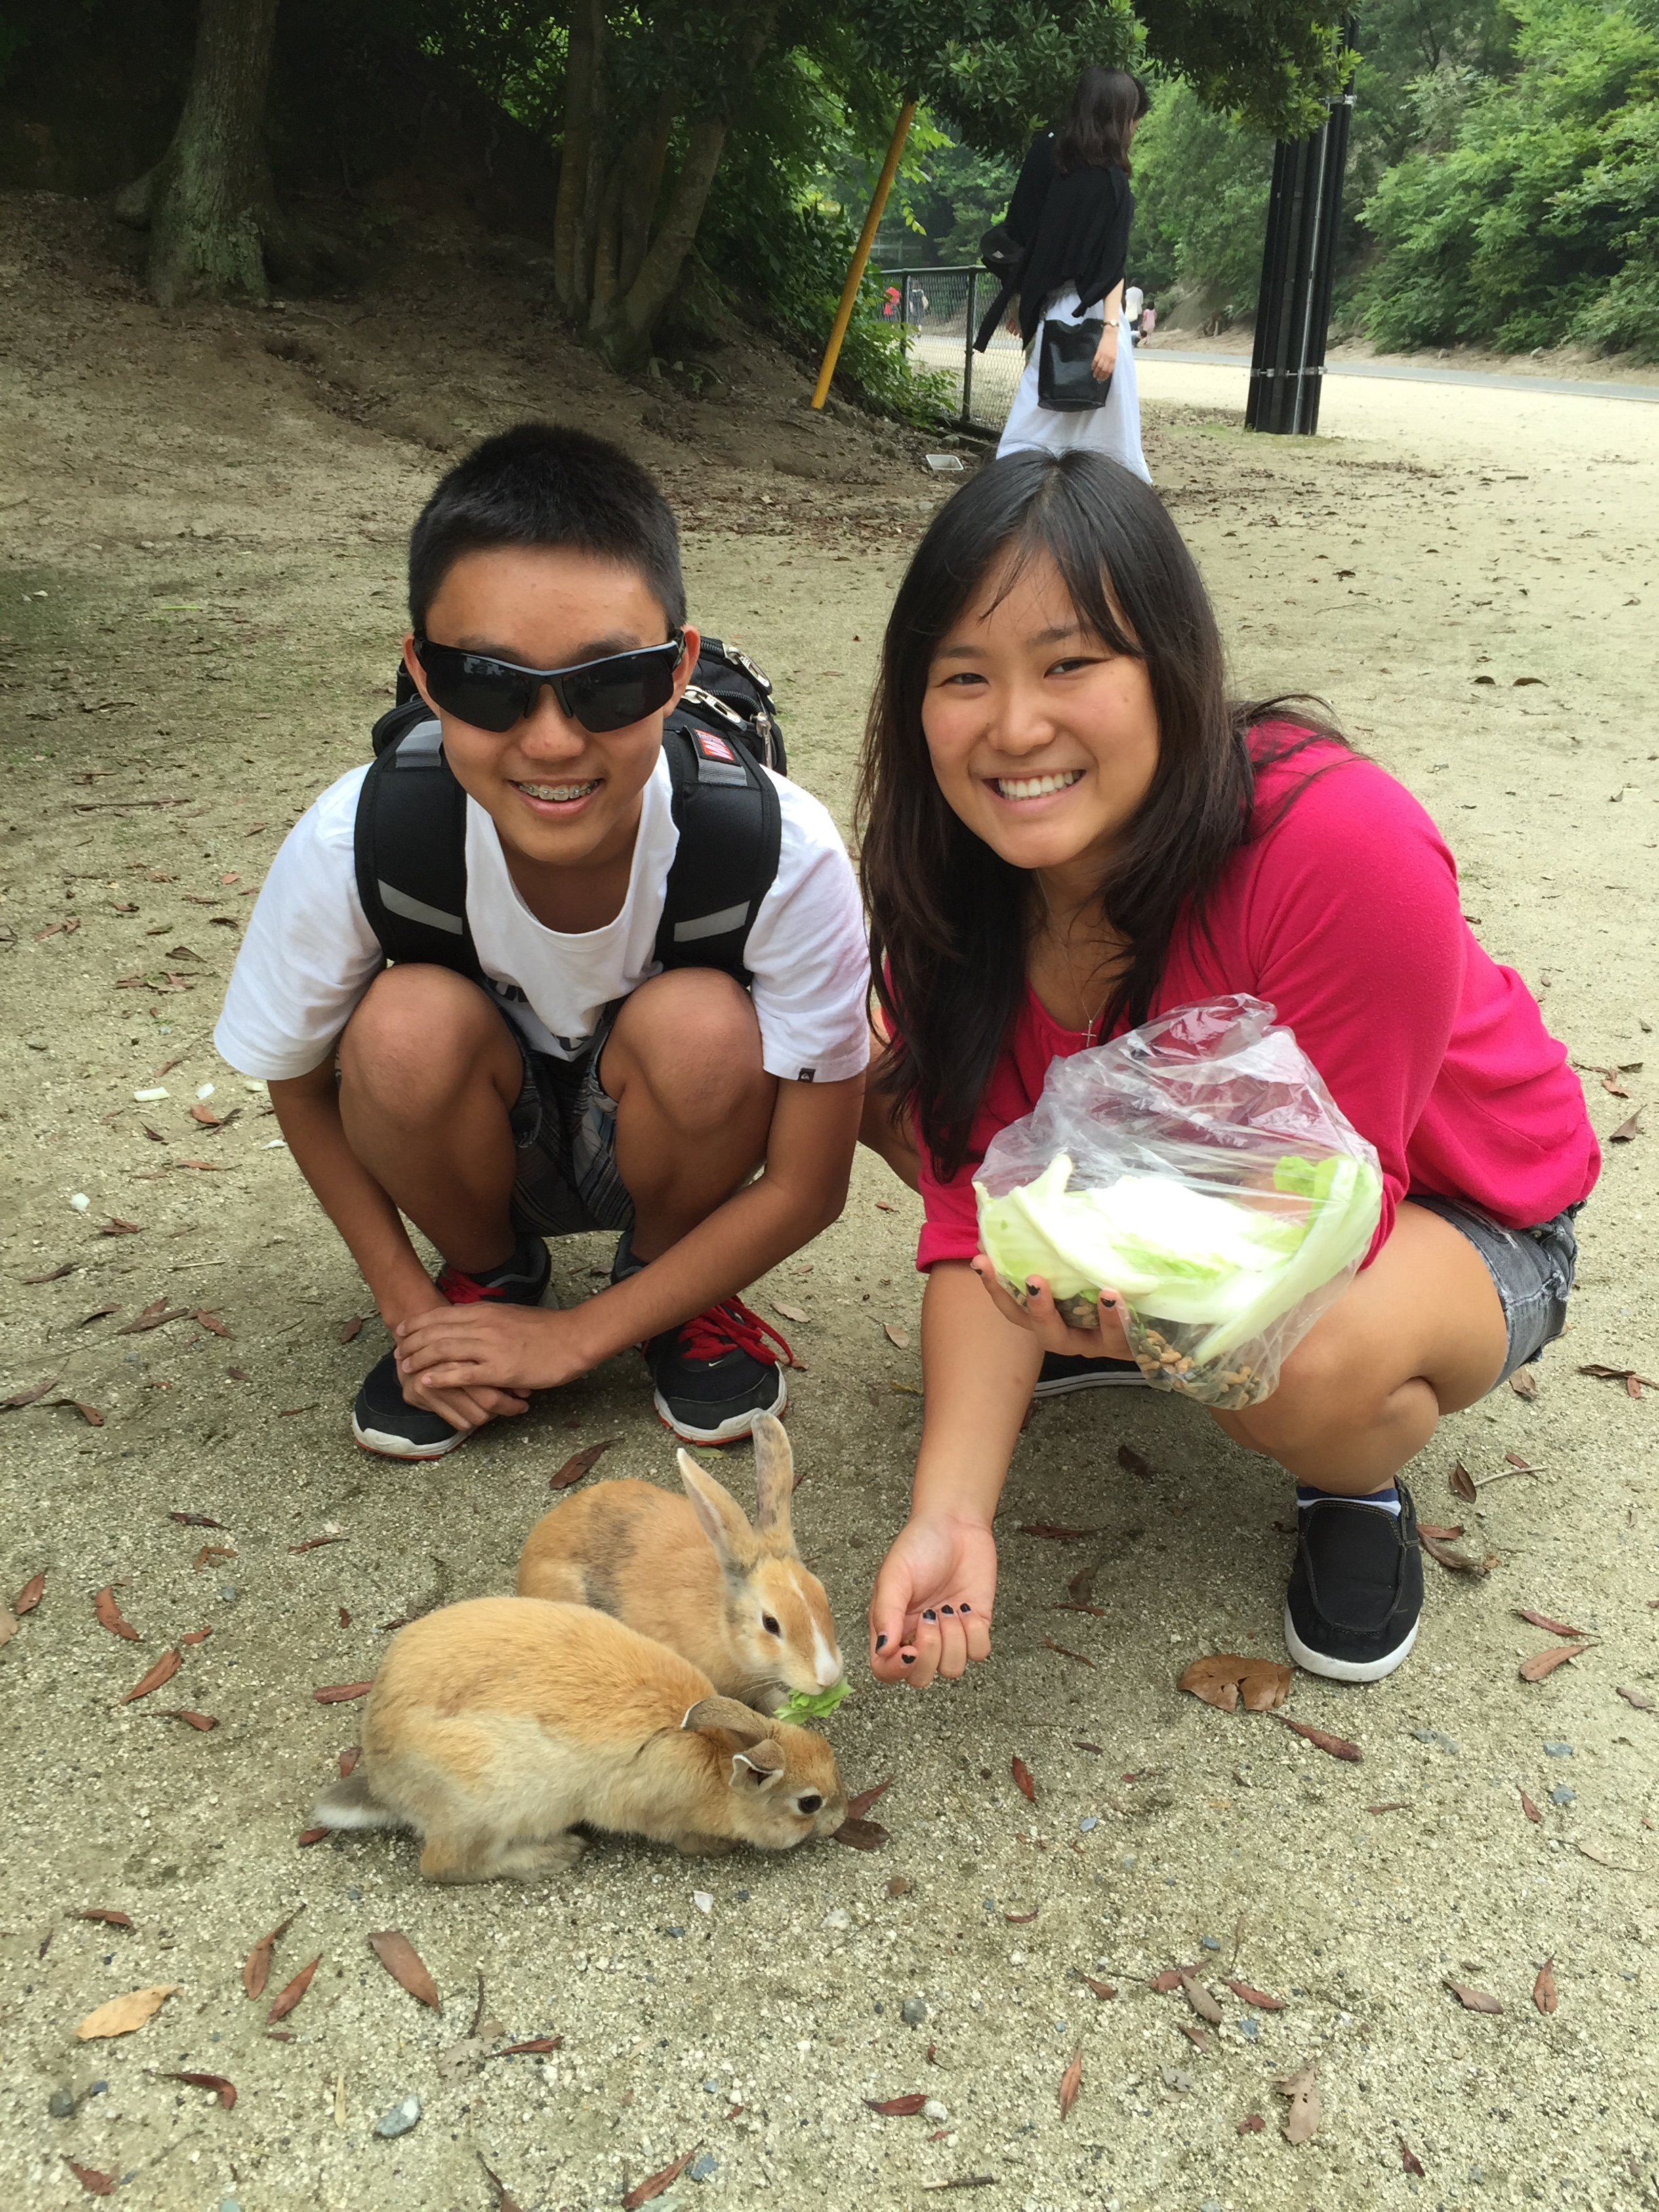 Writer Patsy Iwasaki's children, Jairus and Kellie, feeding rabbits on Okunoshima, also known as Rabbit Island.